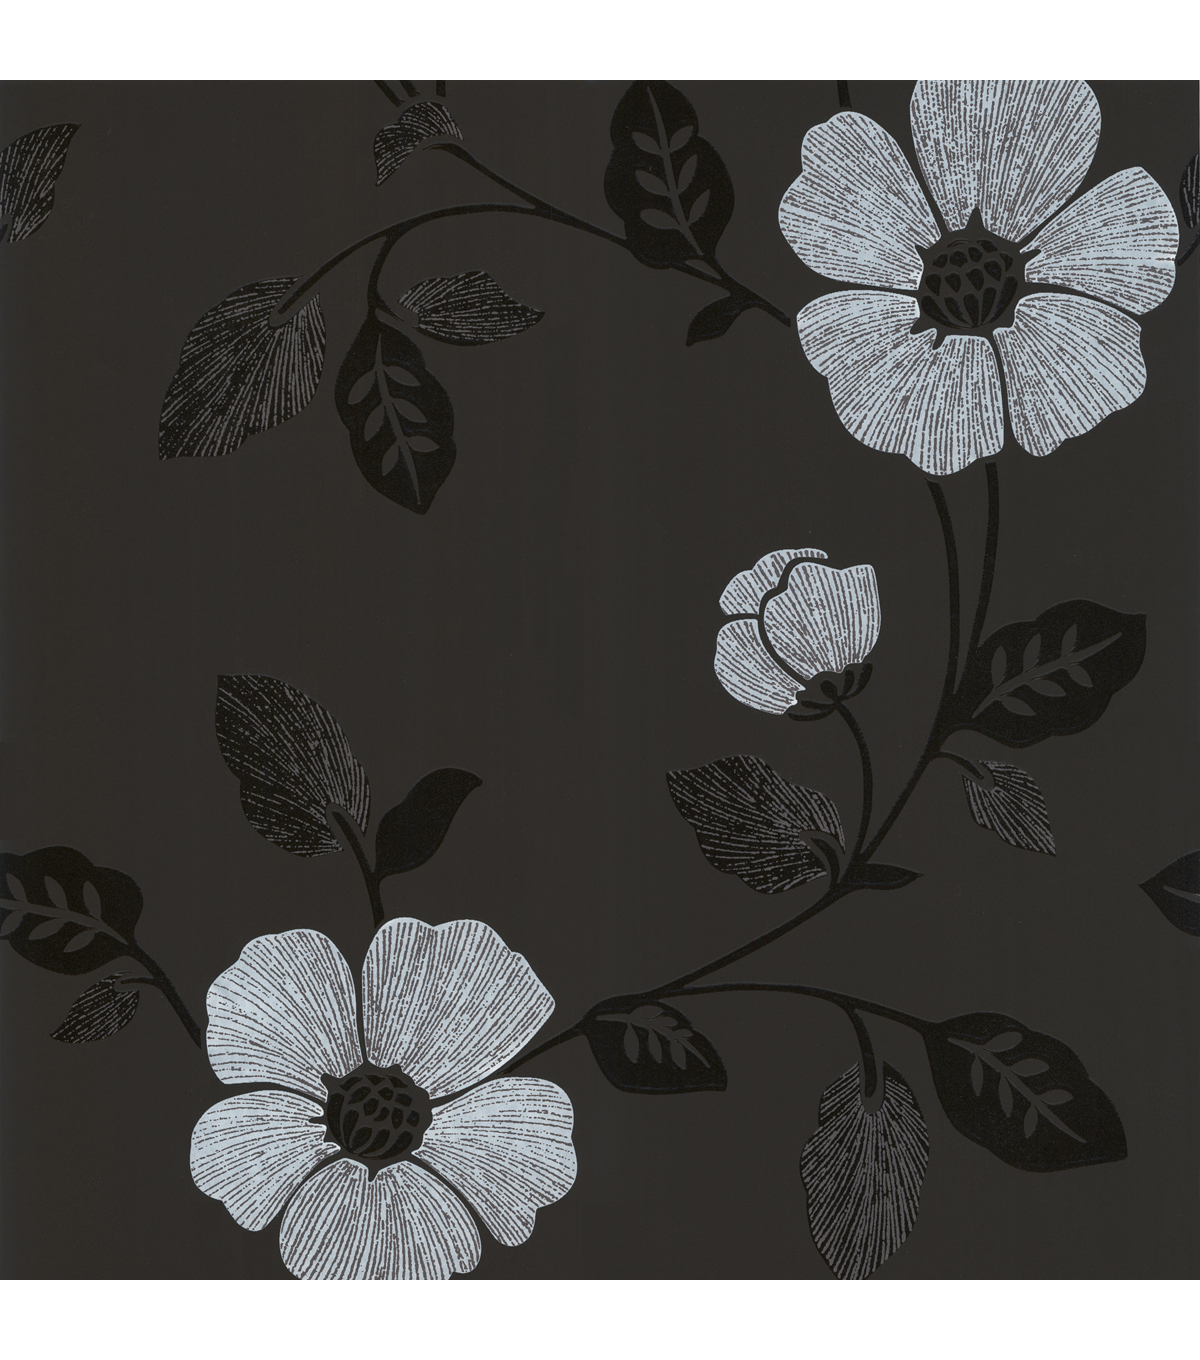 Maddison Black French Floral Wallpaper Sample